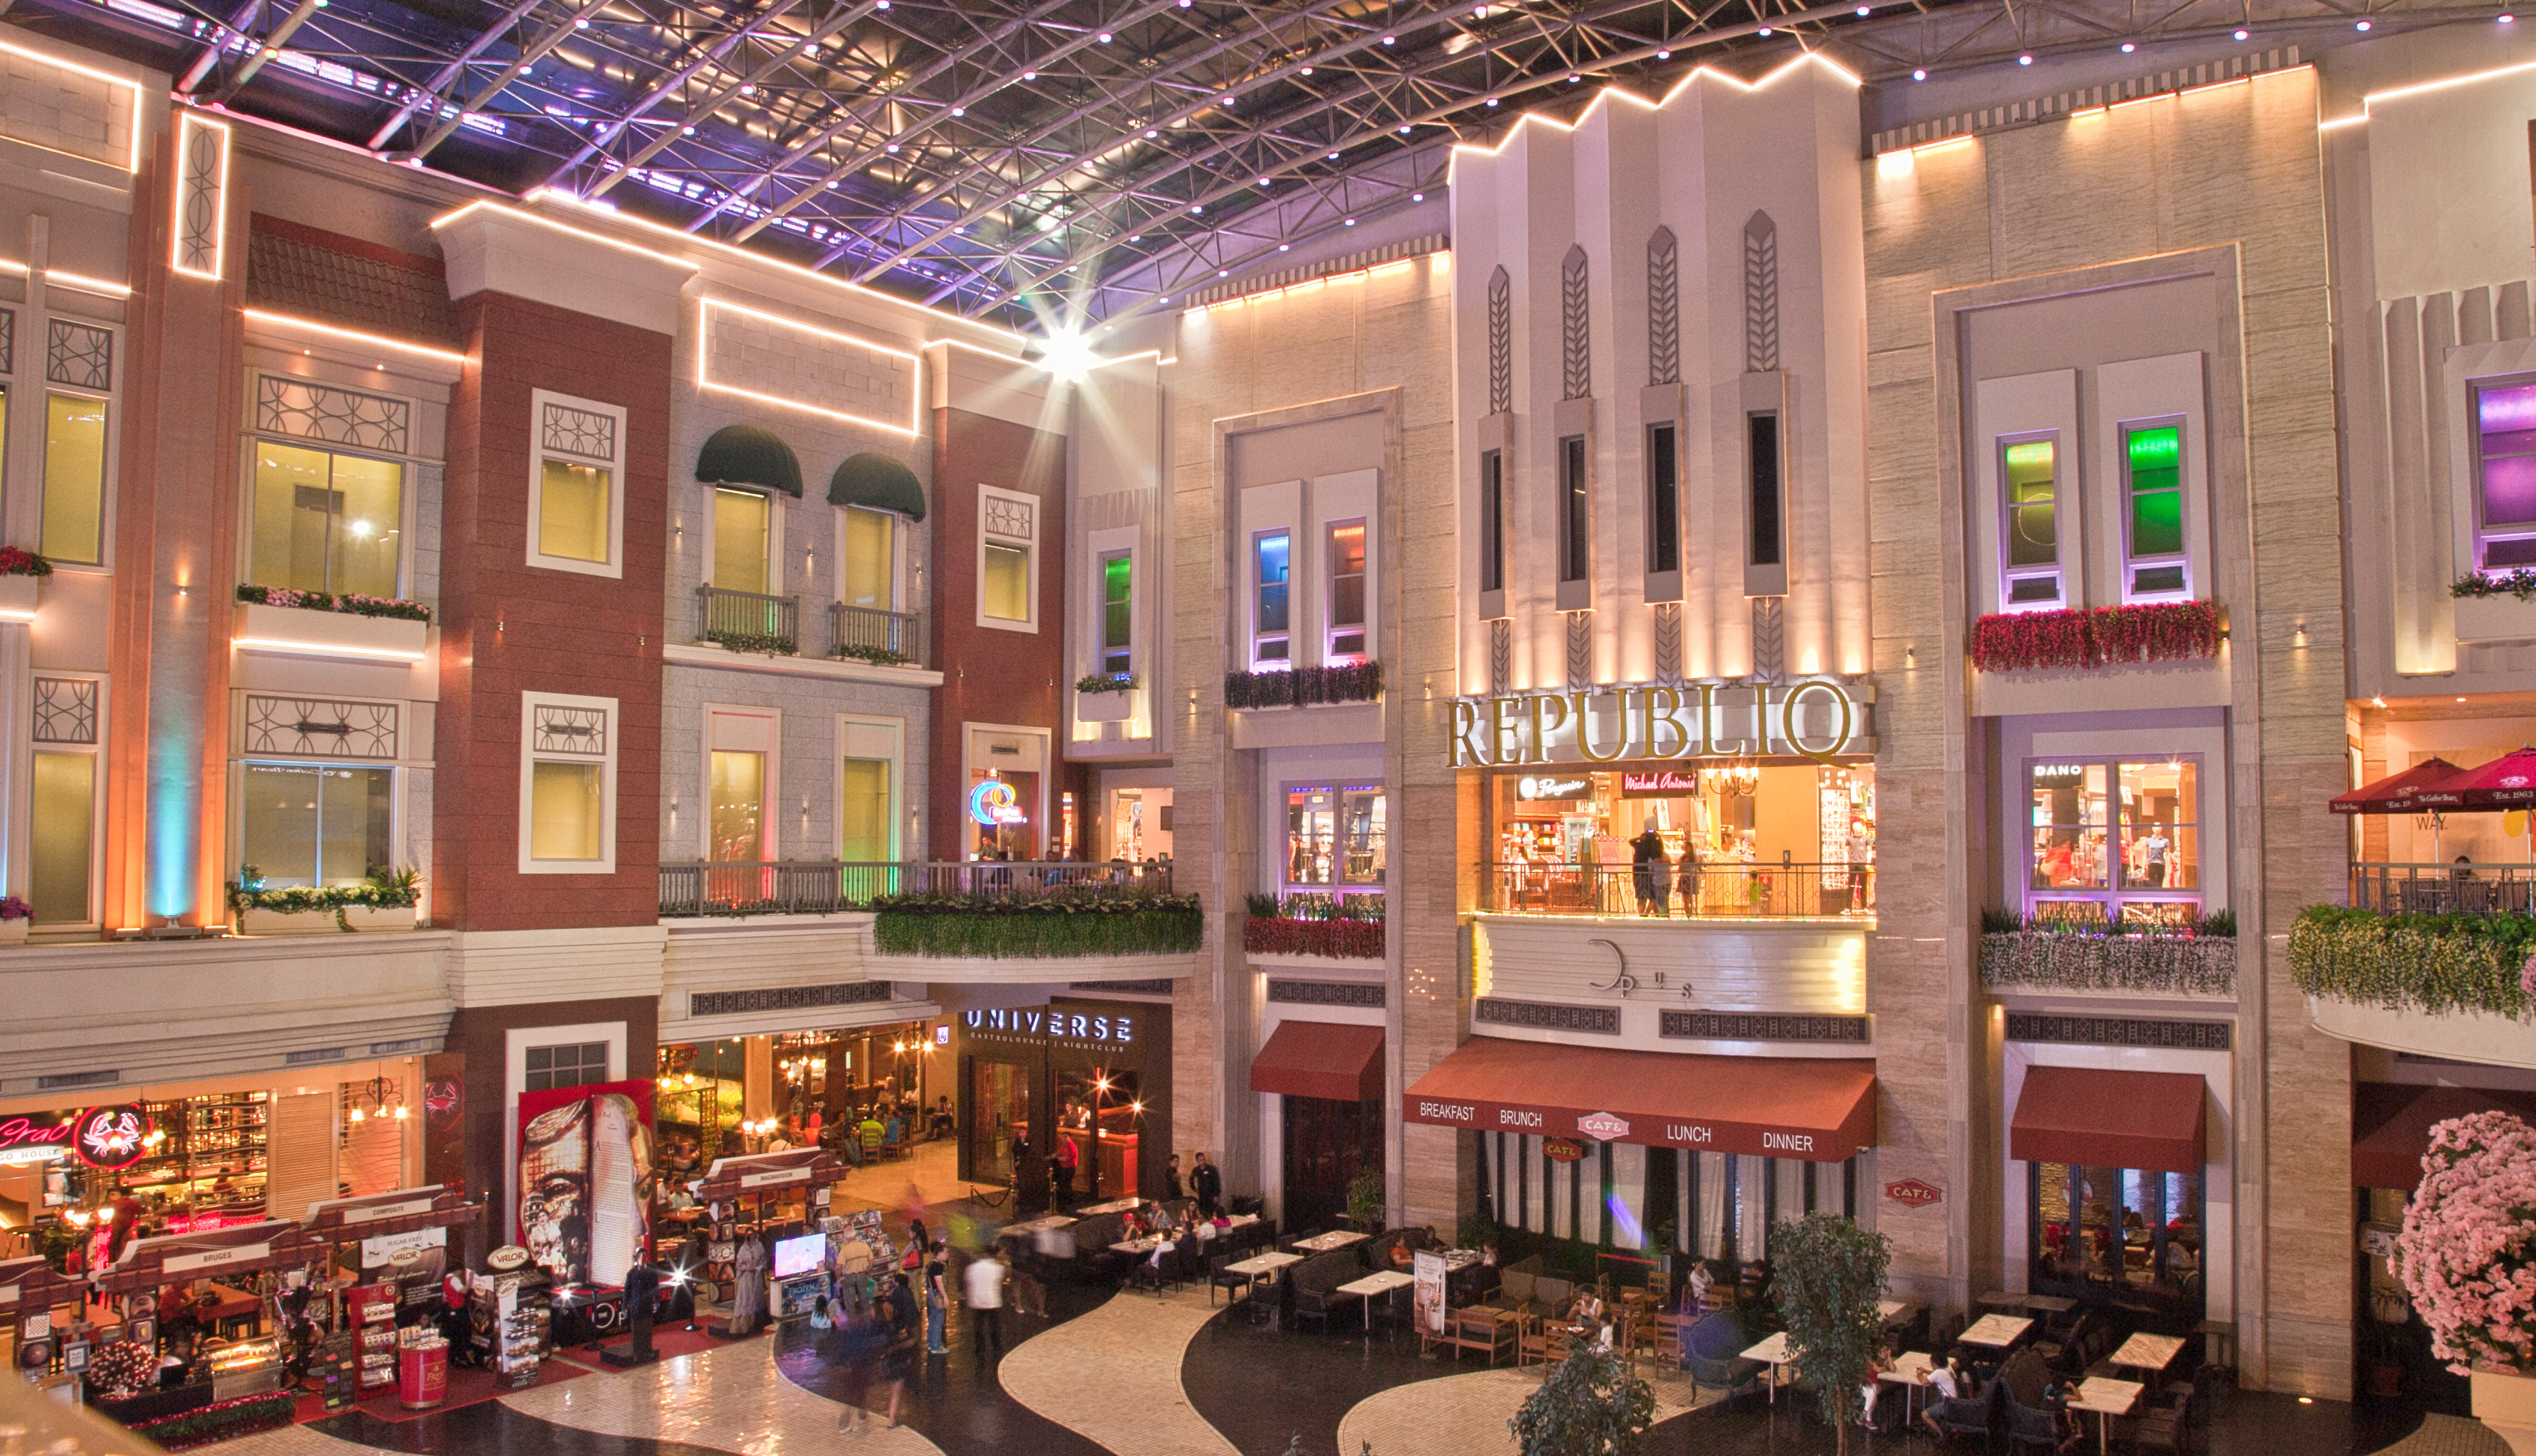 Resorts world manila shopping mall in metro manila thousand wonders resorts world manila solutioingenieria Image collections